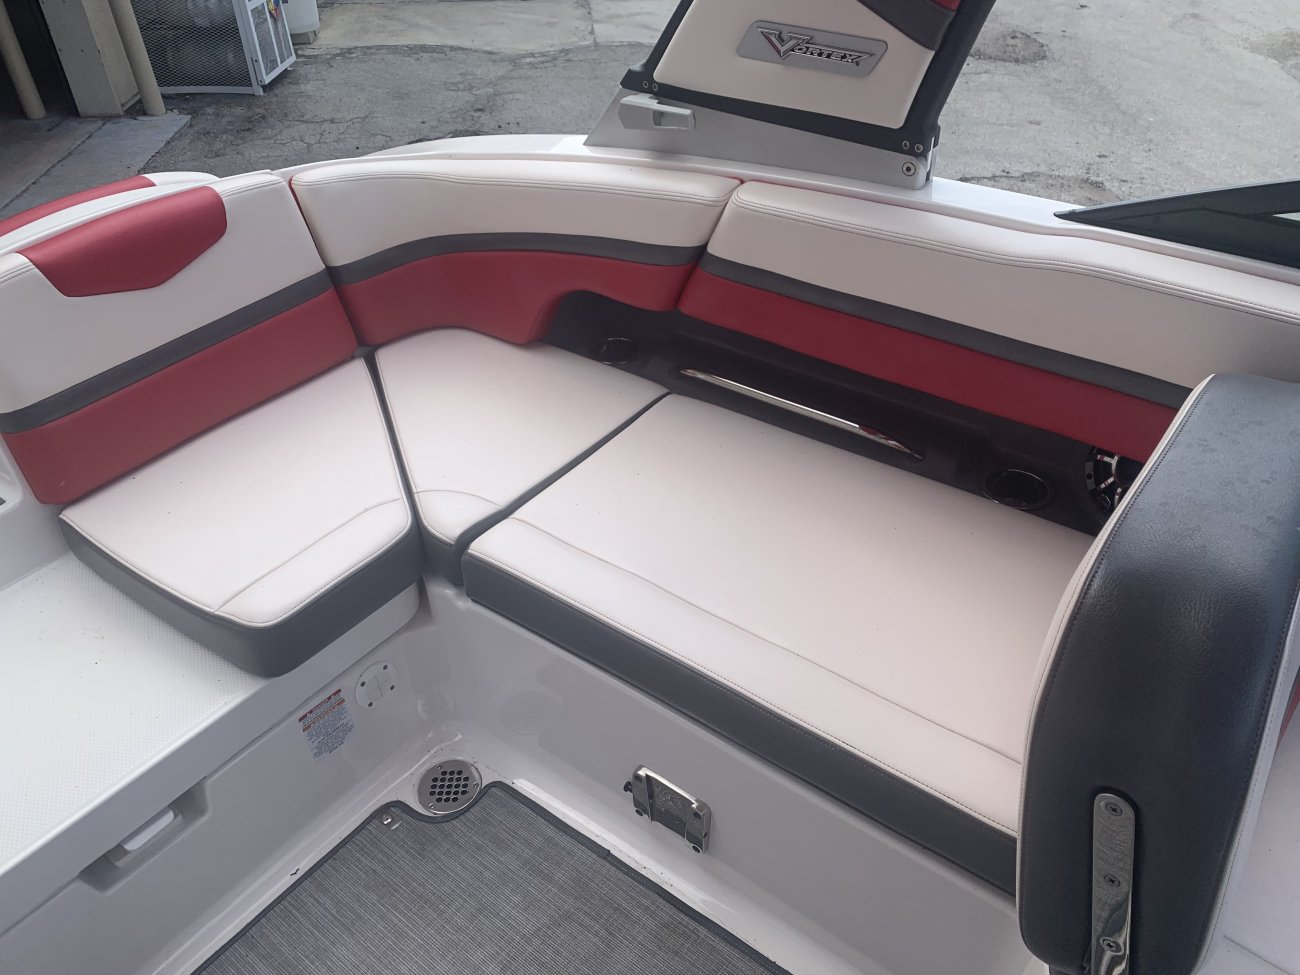 A 223 VRX Jet Boat is a Power and could be classed as a Bowrider, Freshwater Fishing, High Performance, Jet Boat, Ski Boat, Wakeboard Boat, Runabout,  or, just an overall Great Boat!